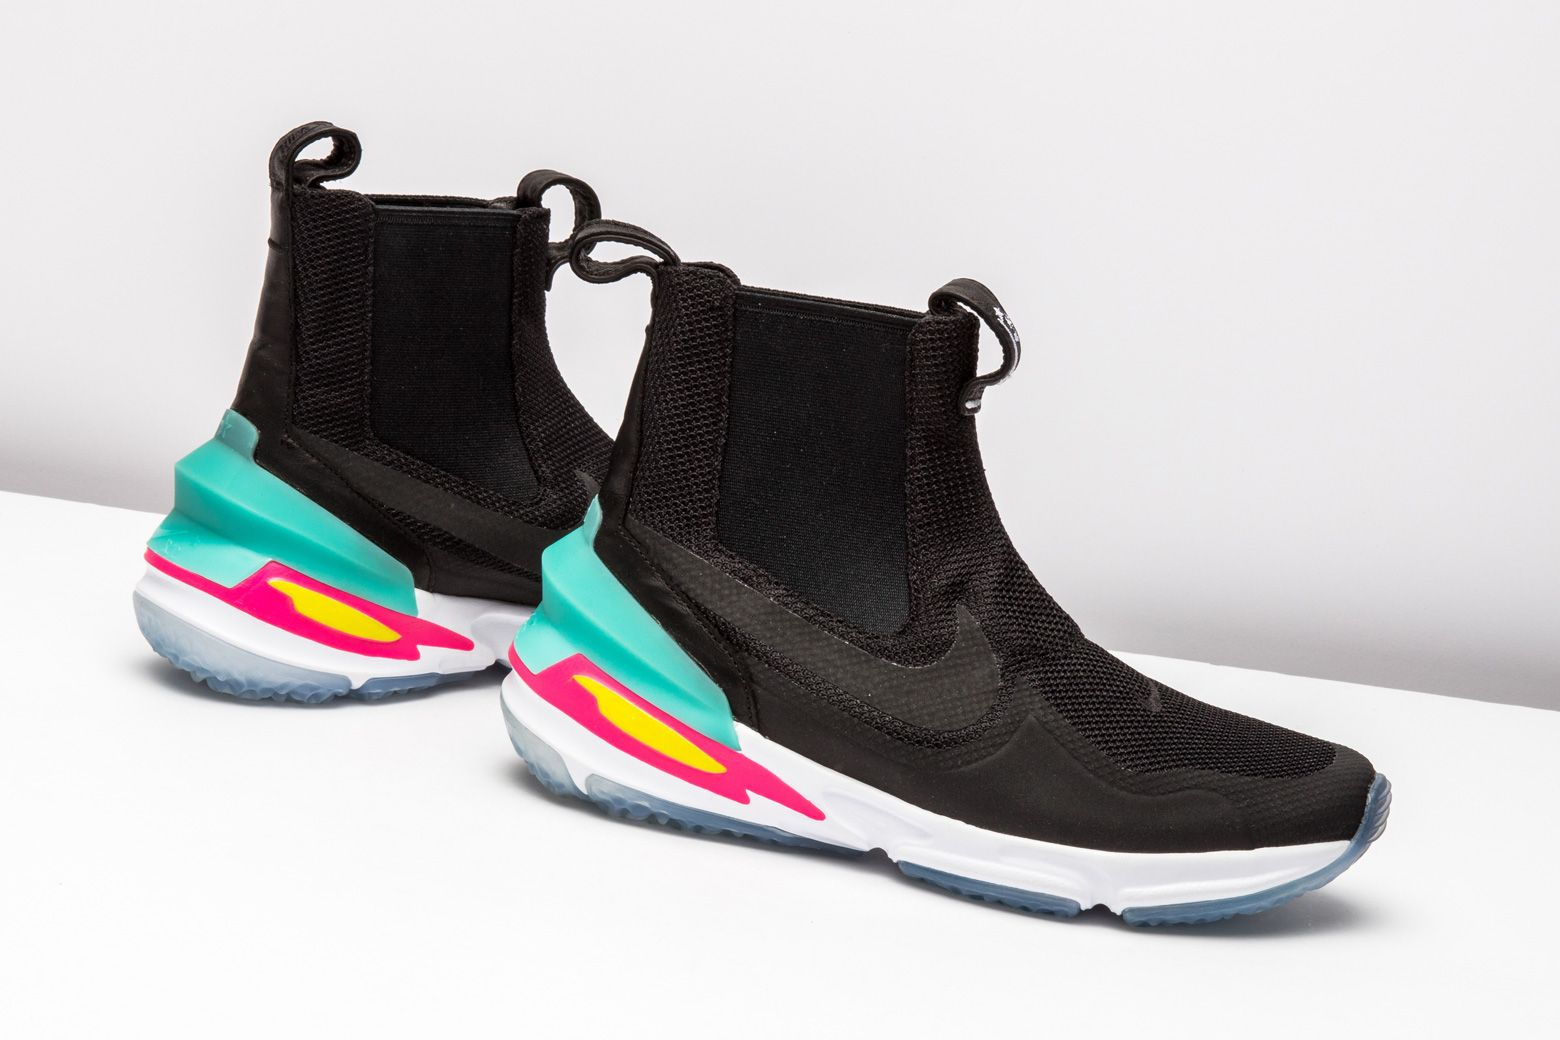 13a18cc4c5d3 Riccardo Tisci and NikeLab delivered the Chelsea-boot inspired Air Zoom  Legend. http